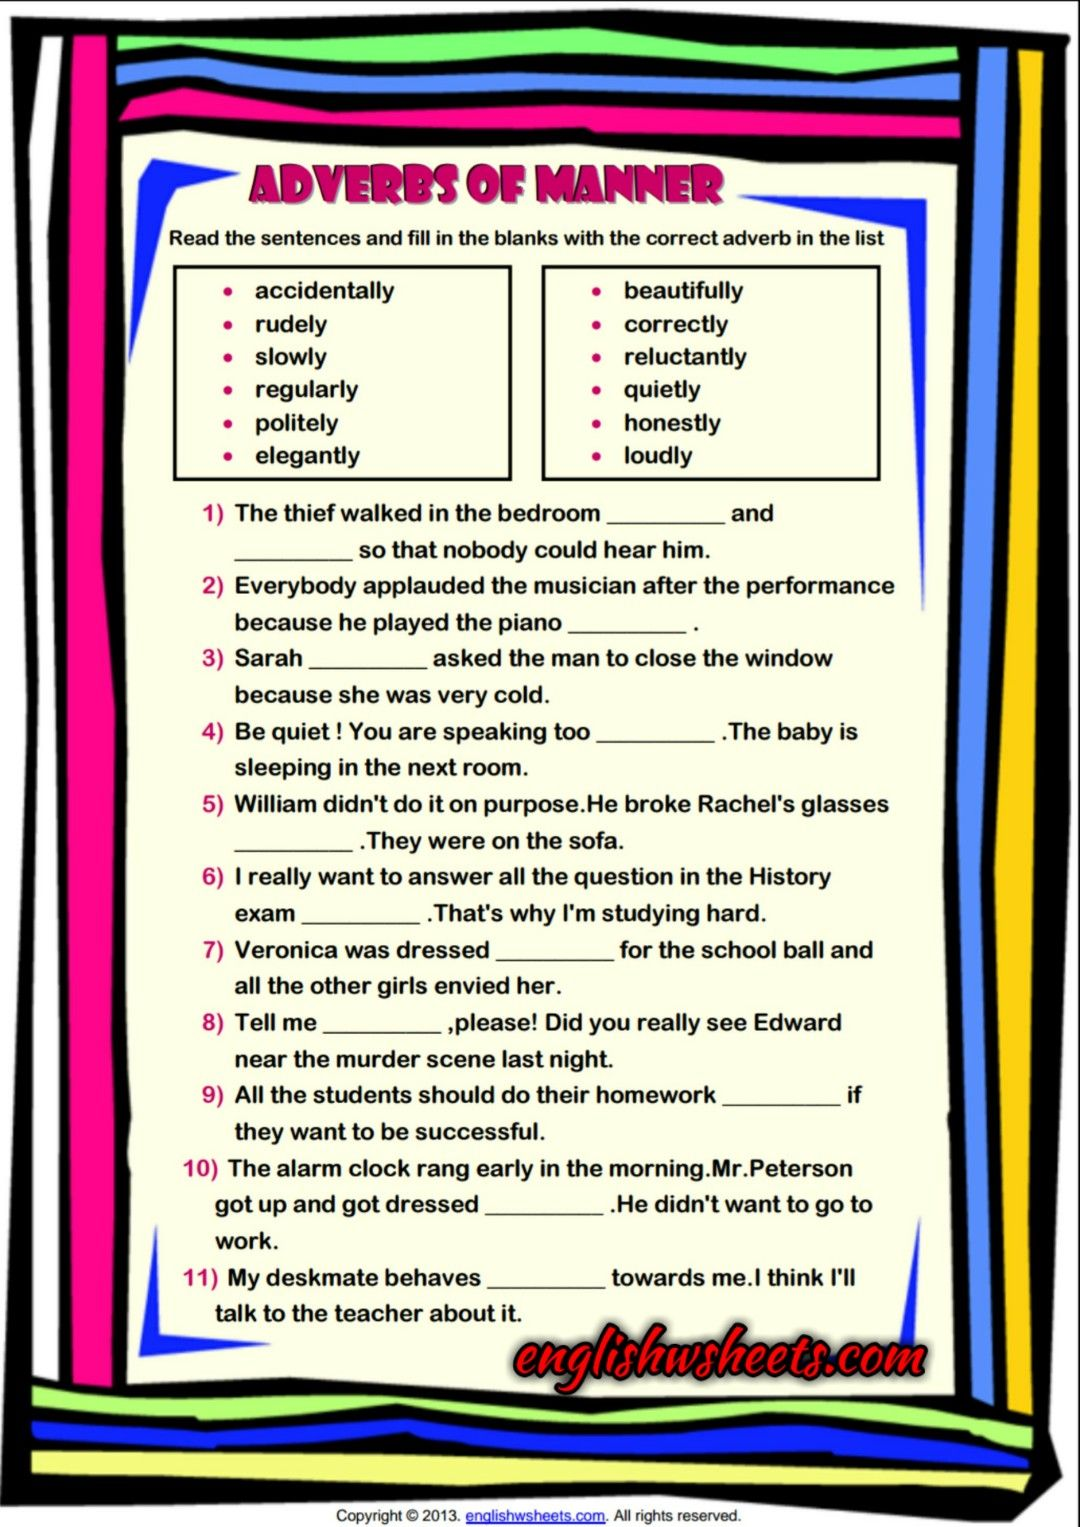 Adverbs Of Manner Esl Grammar Exercise Worksheet